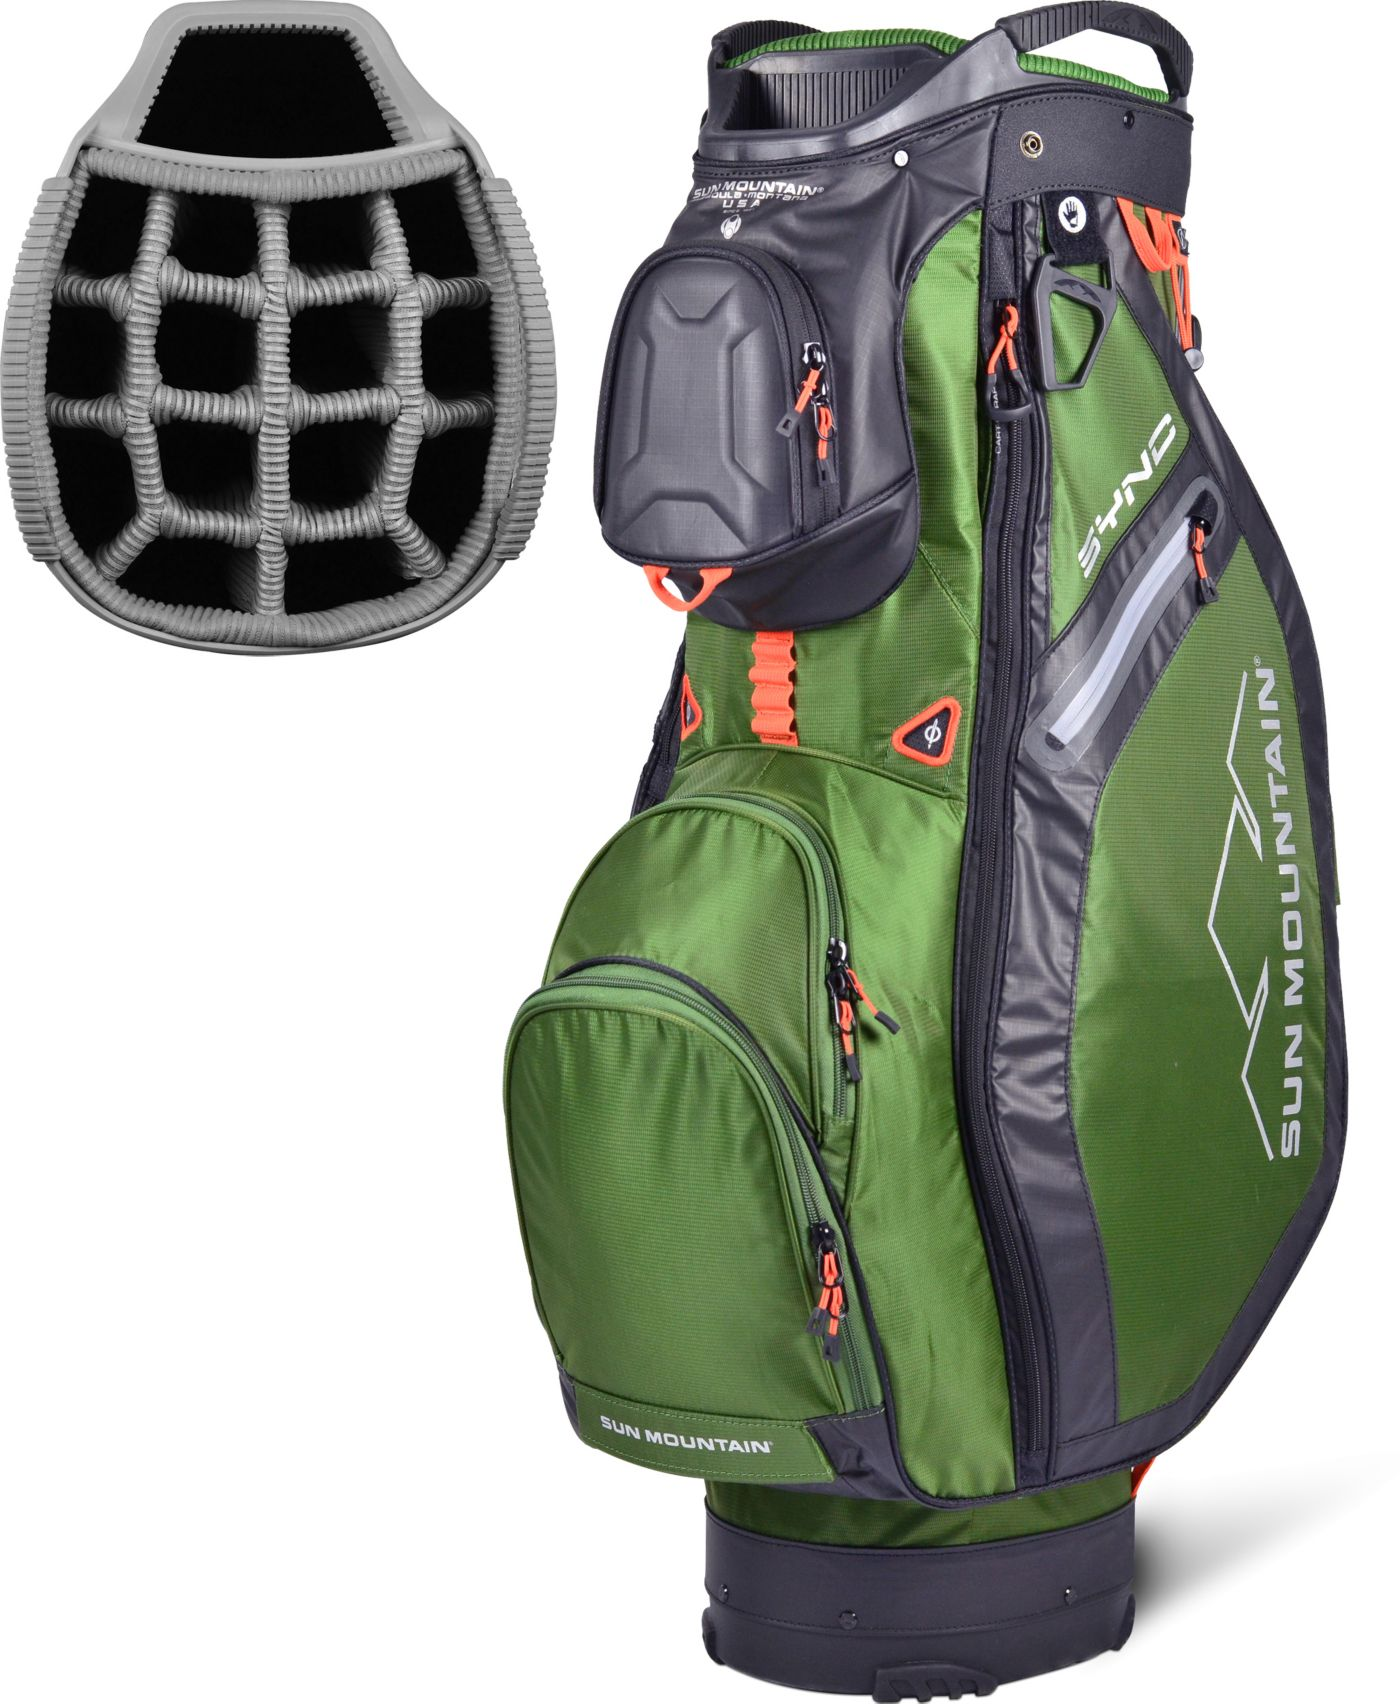 Sun Mountain 2019 Sync Cart Bag